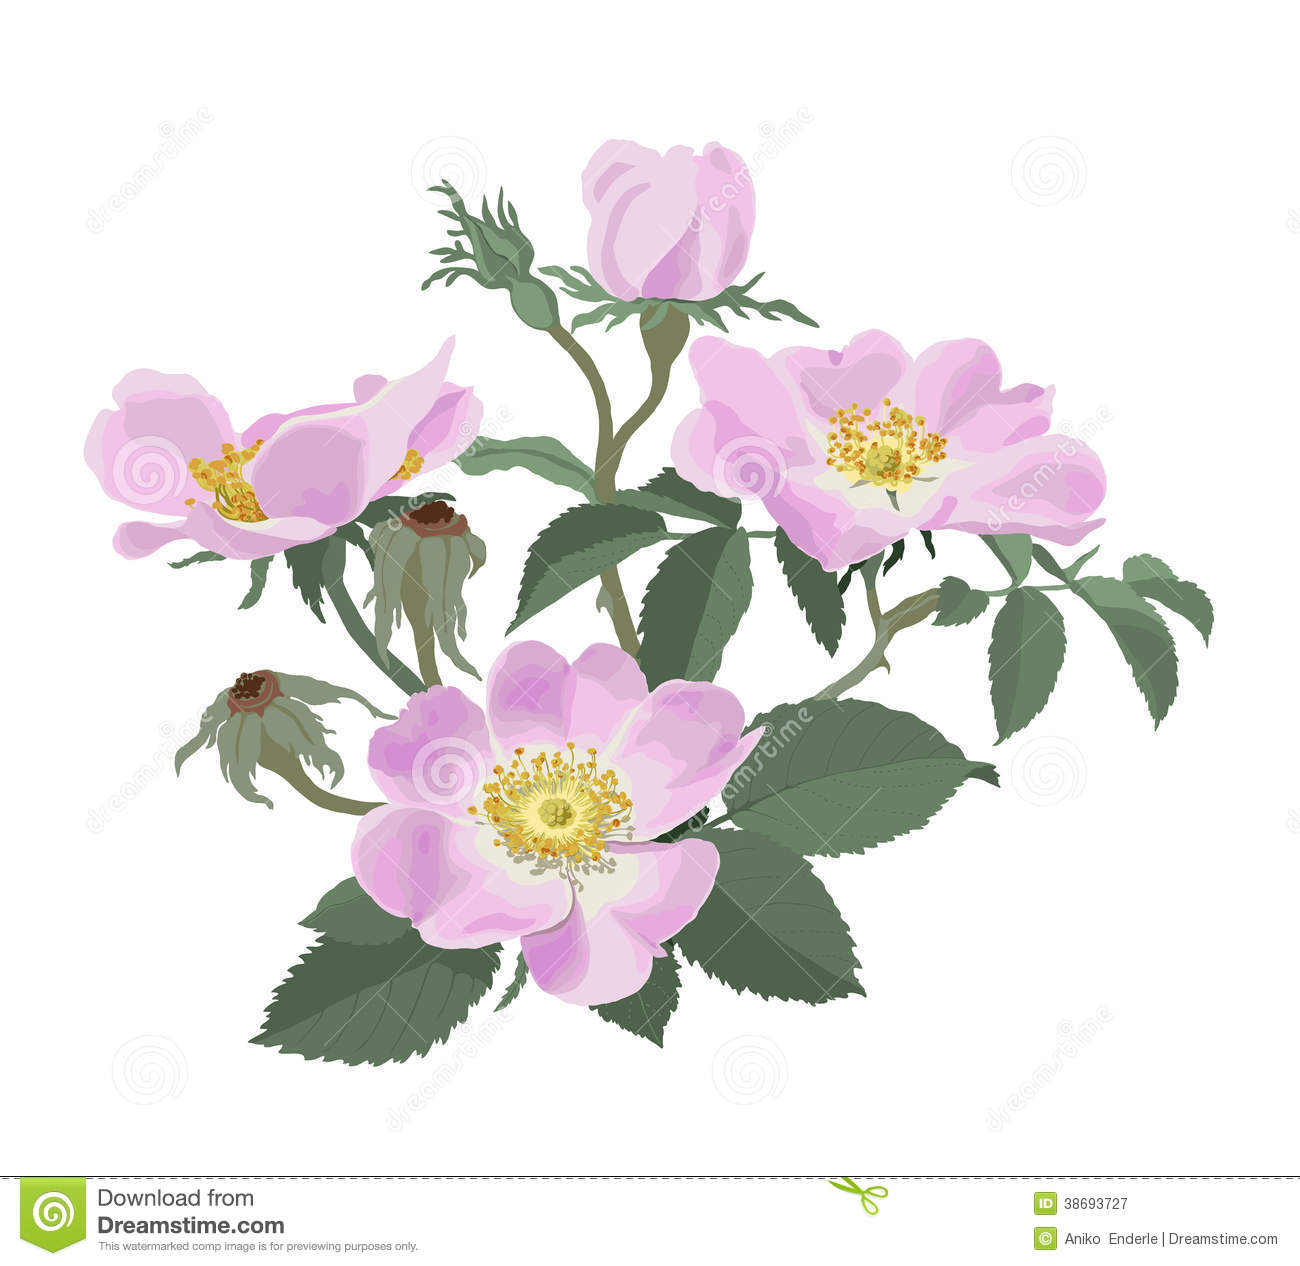 Hand Drawn Vector Illustration Of Pink Wild Roses On White Background